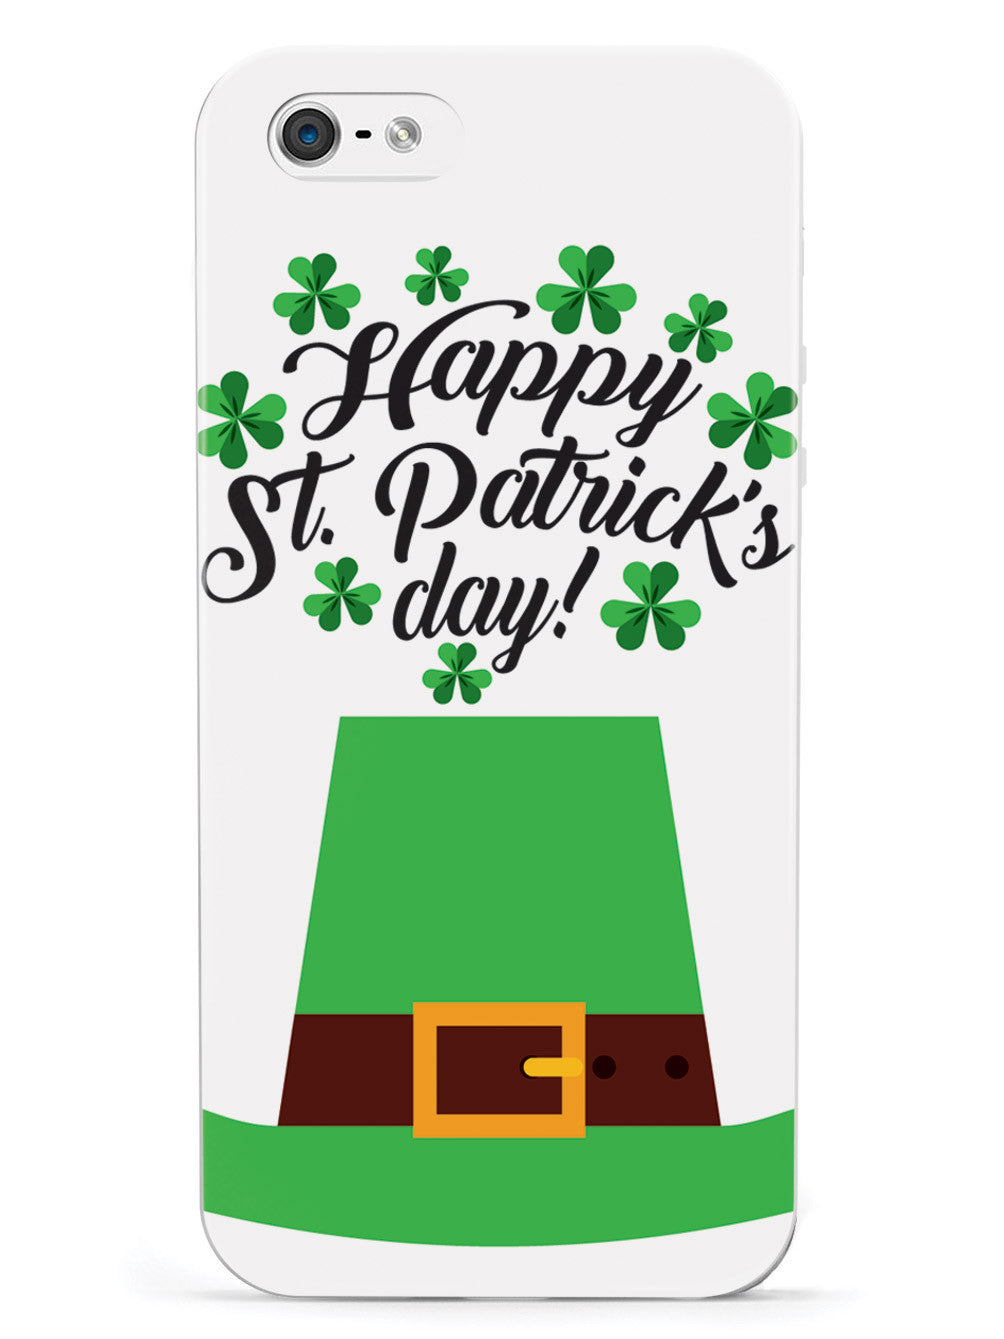 Happy St. Patrick's Day Greeting - White Case